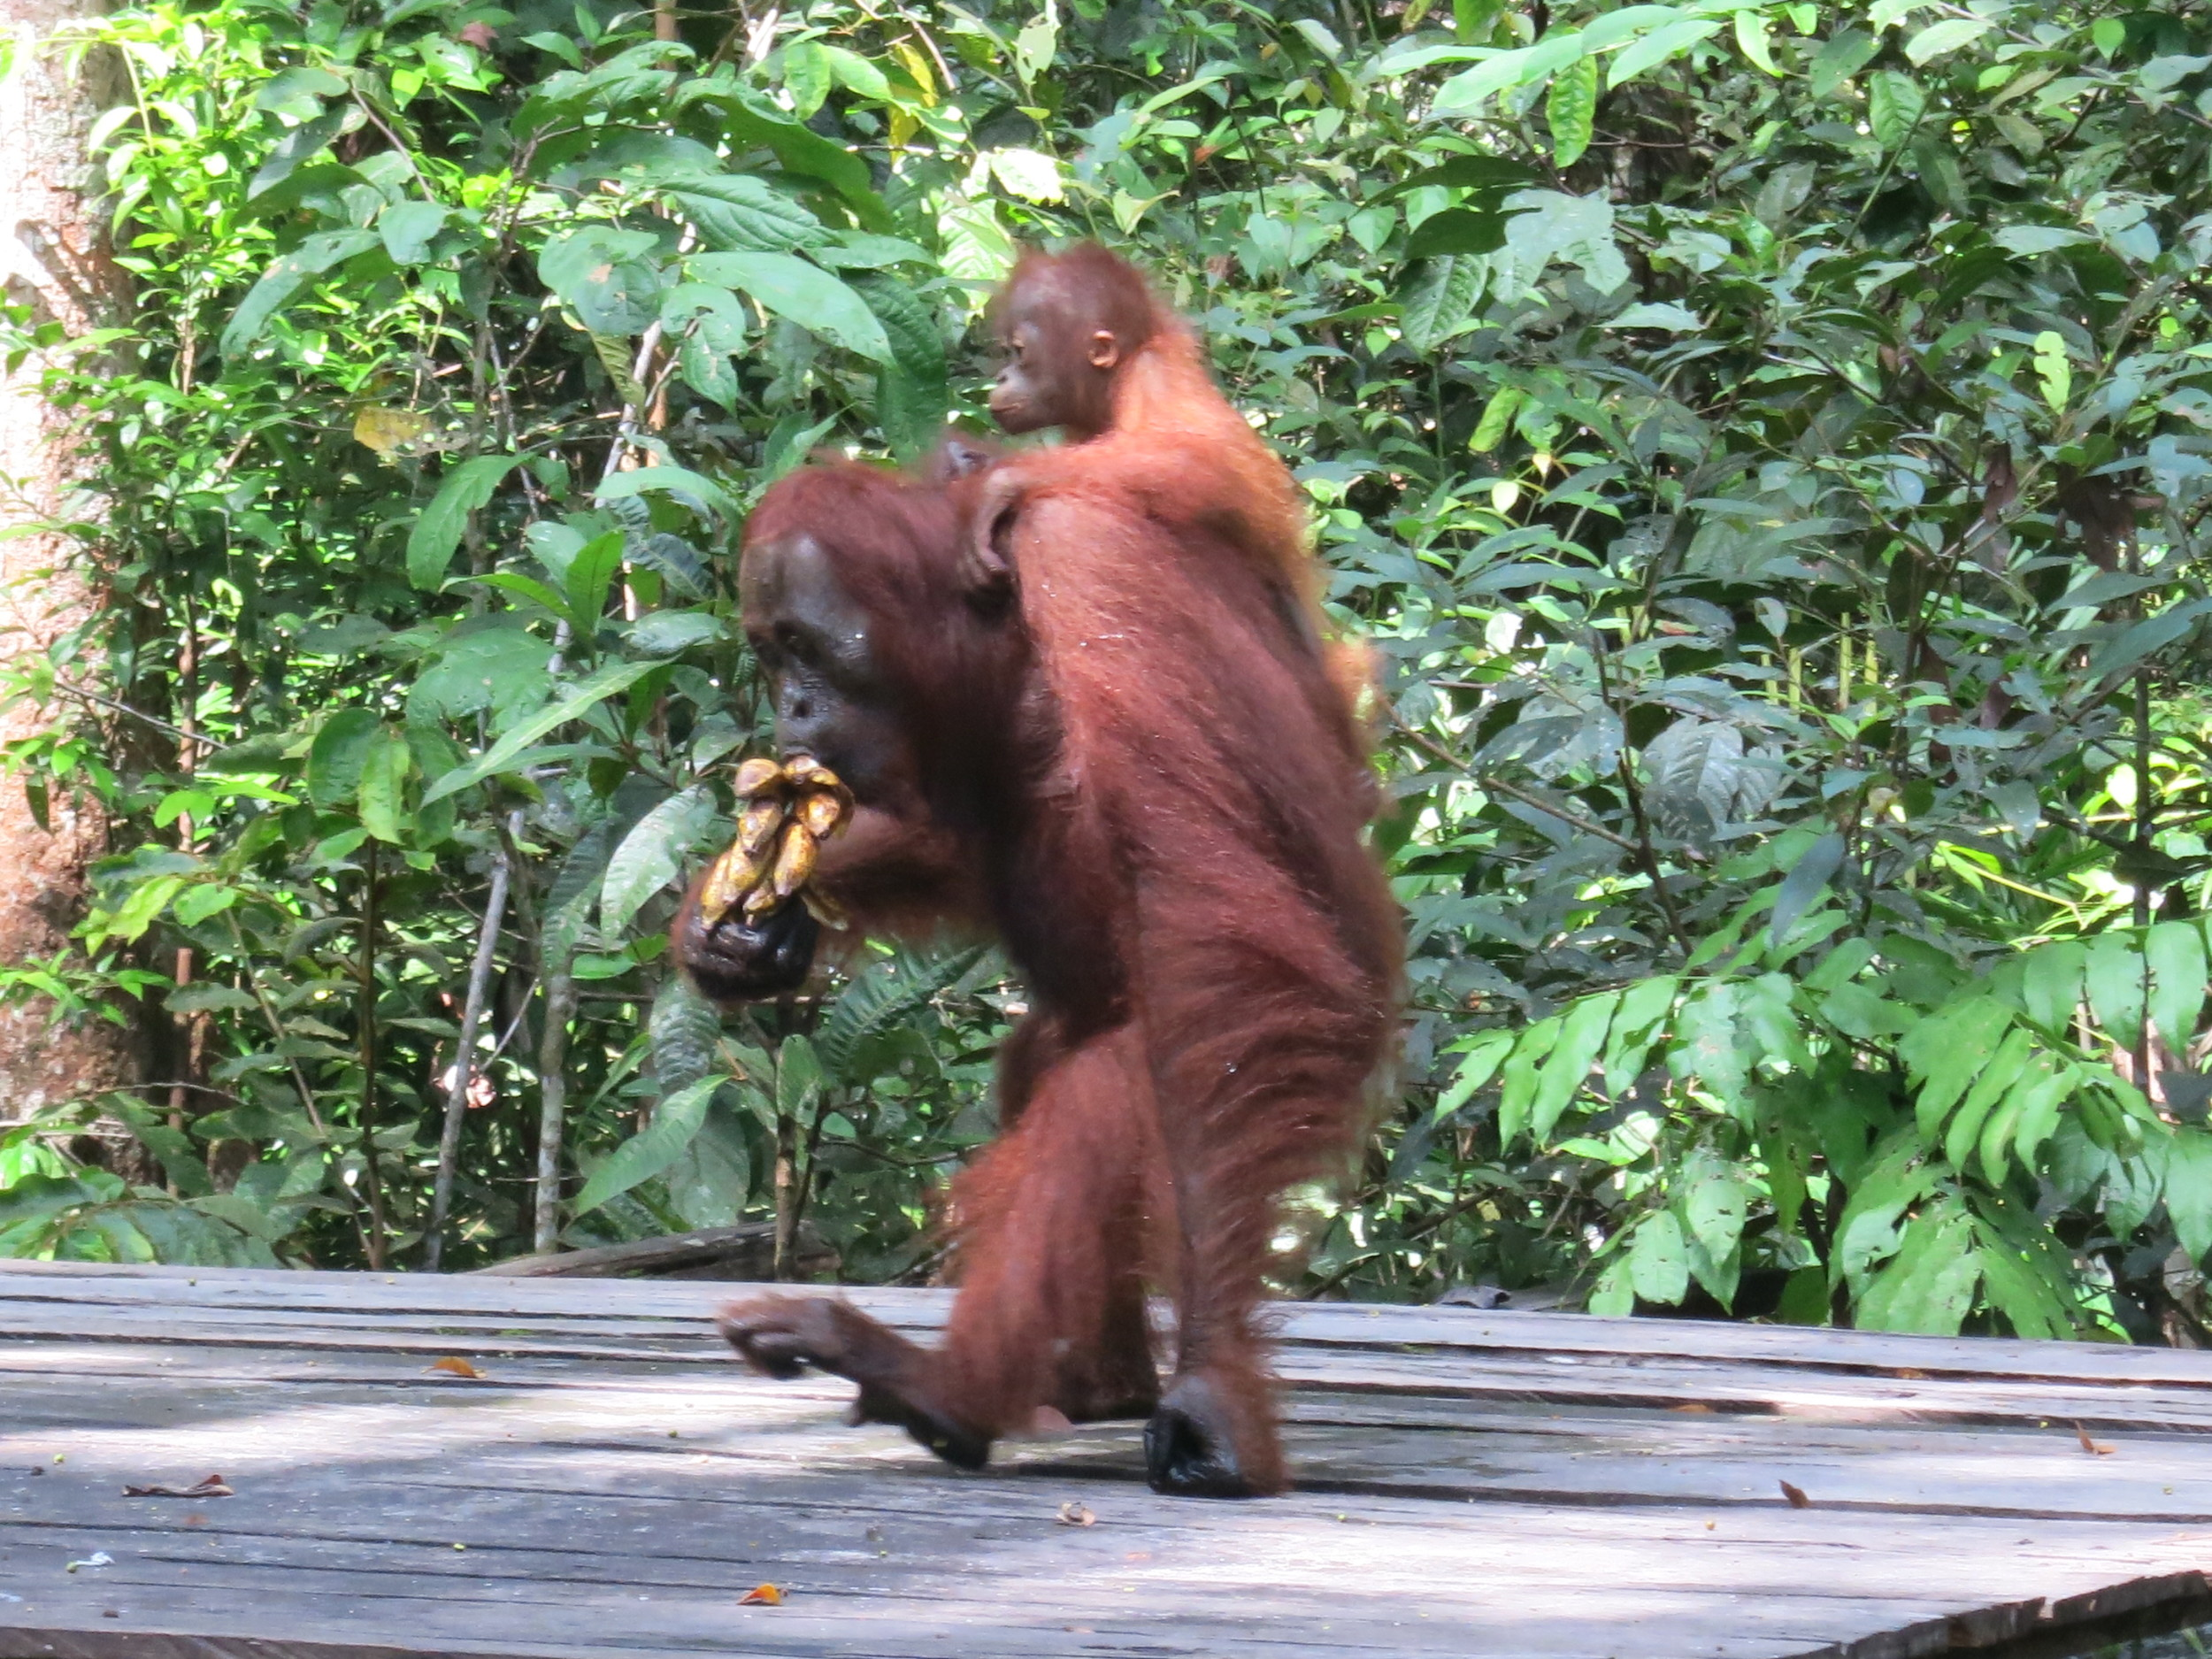 Getting away with 3 bunches of bananas!